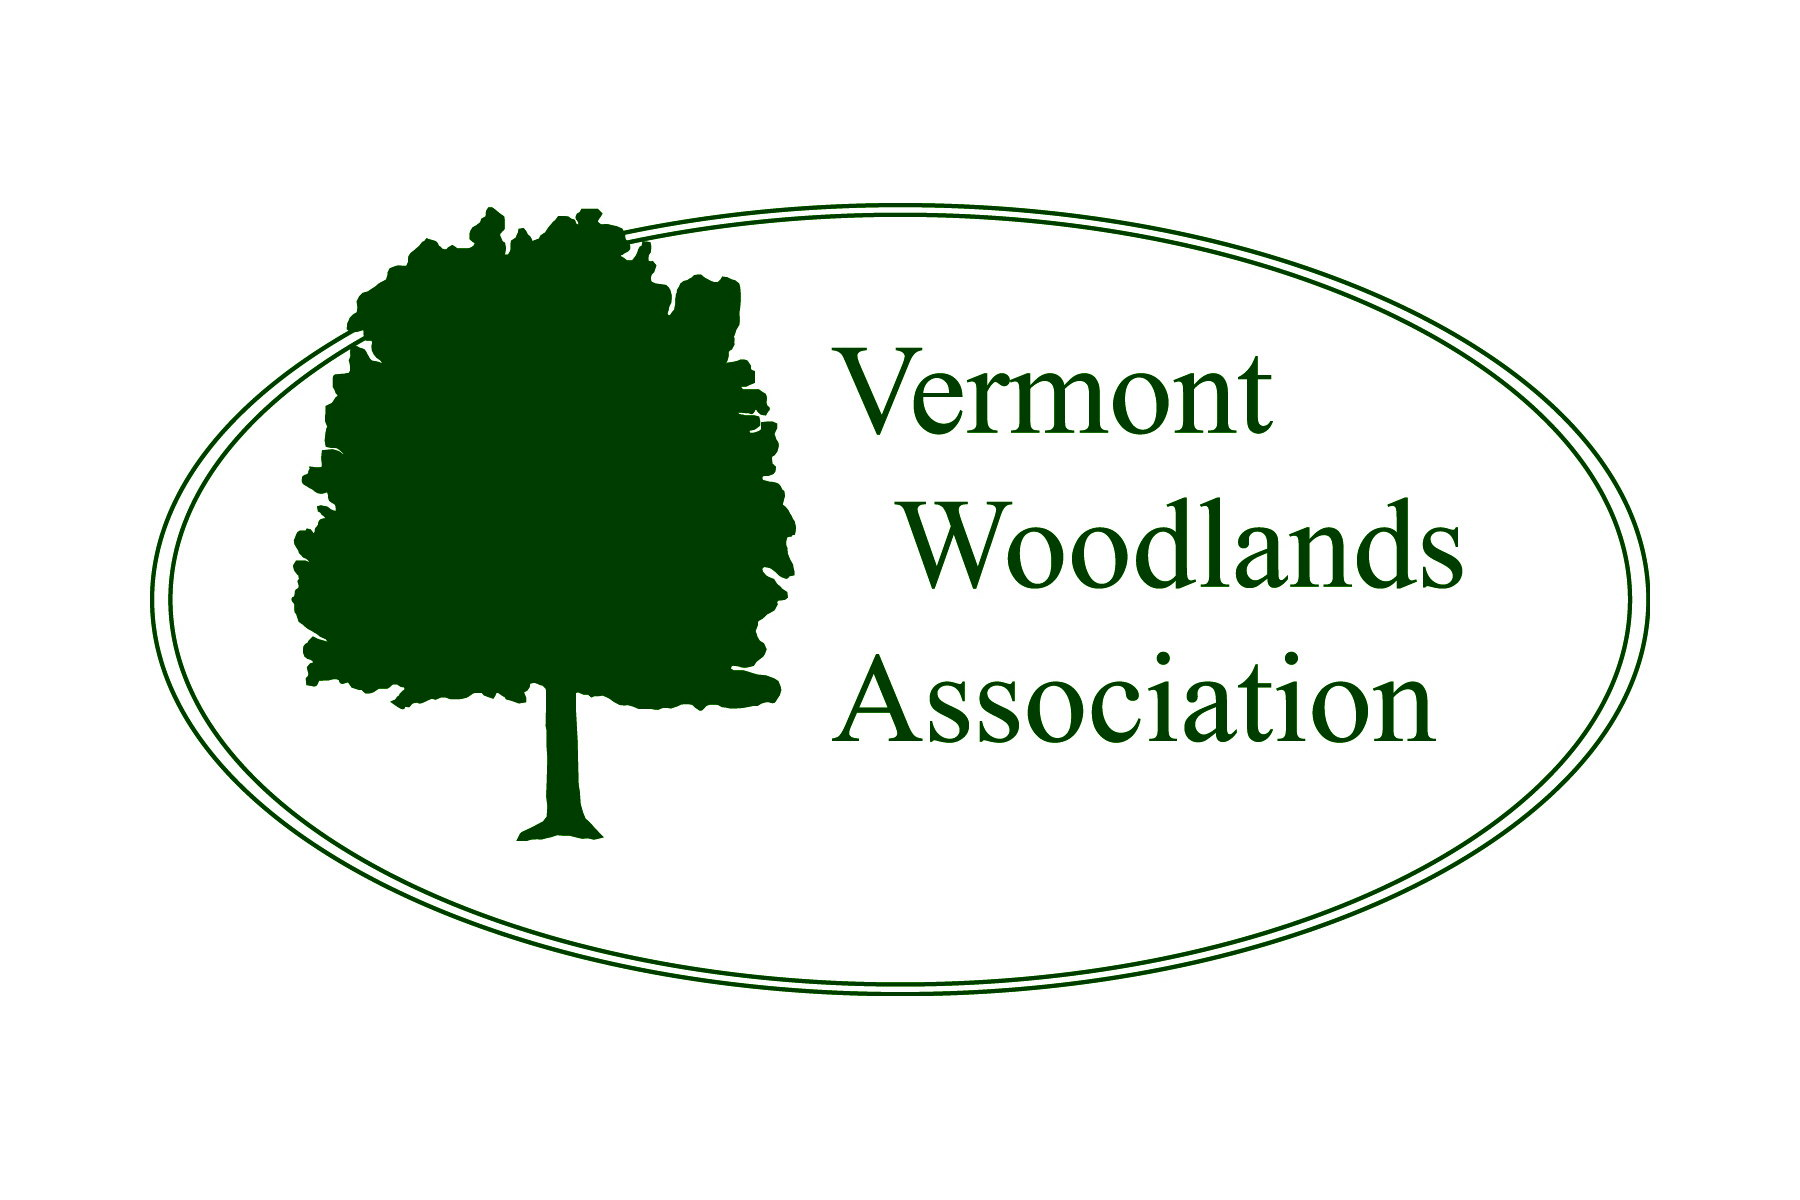 VT Woodland Logo high res2.JPG